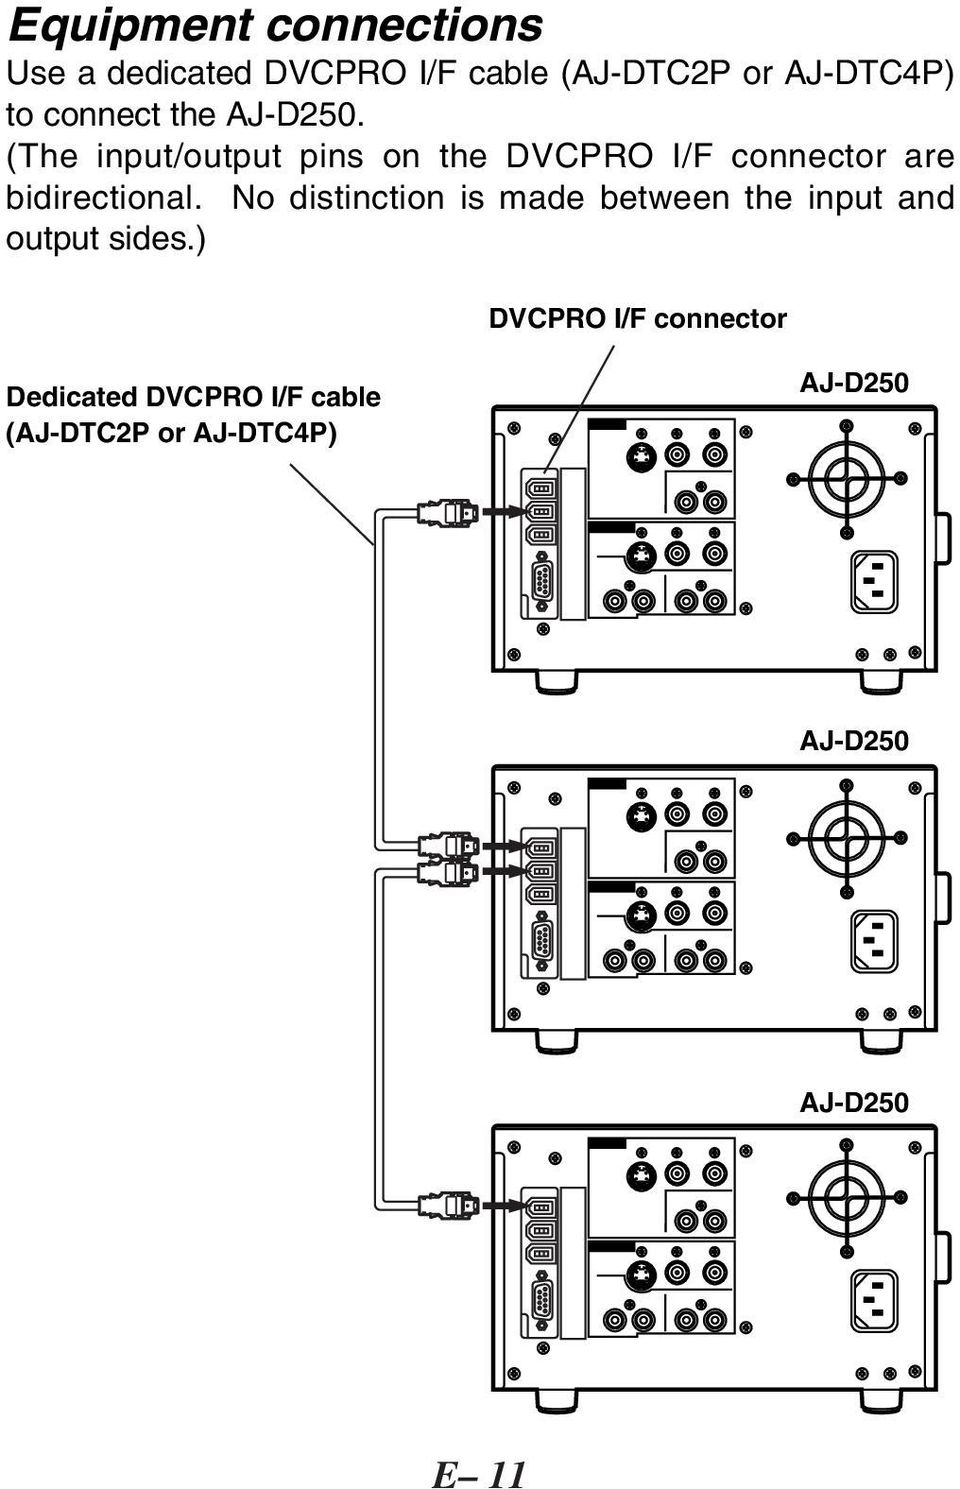 (The input/output pins on the DVCPRO I/F connector are bidirectional.